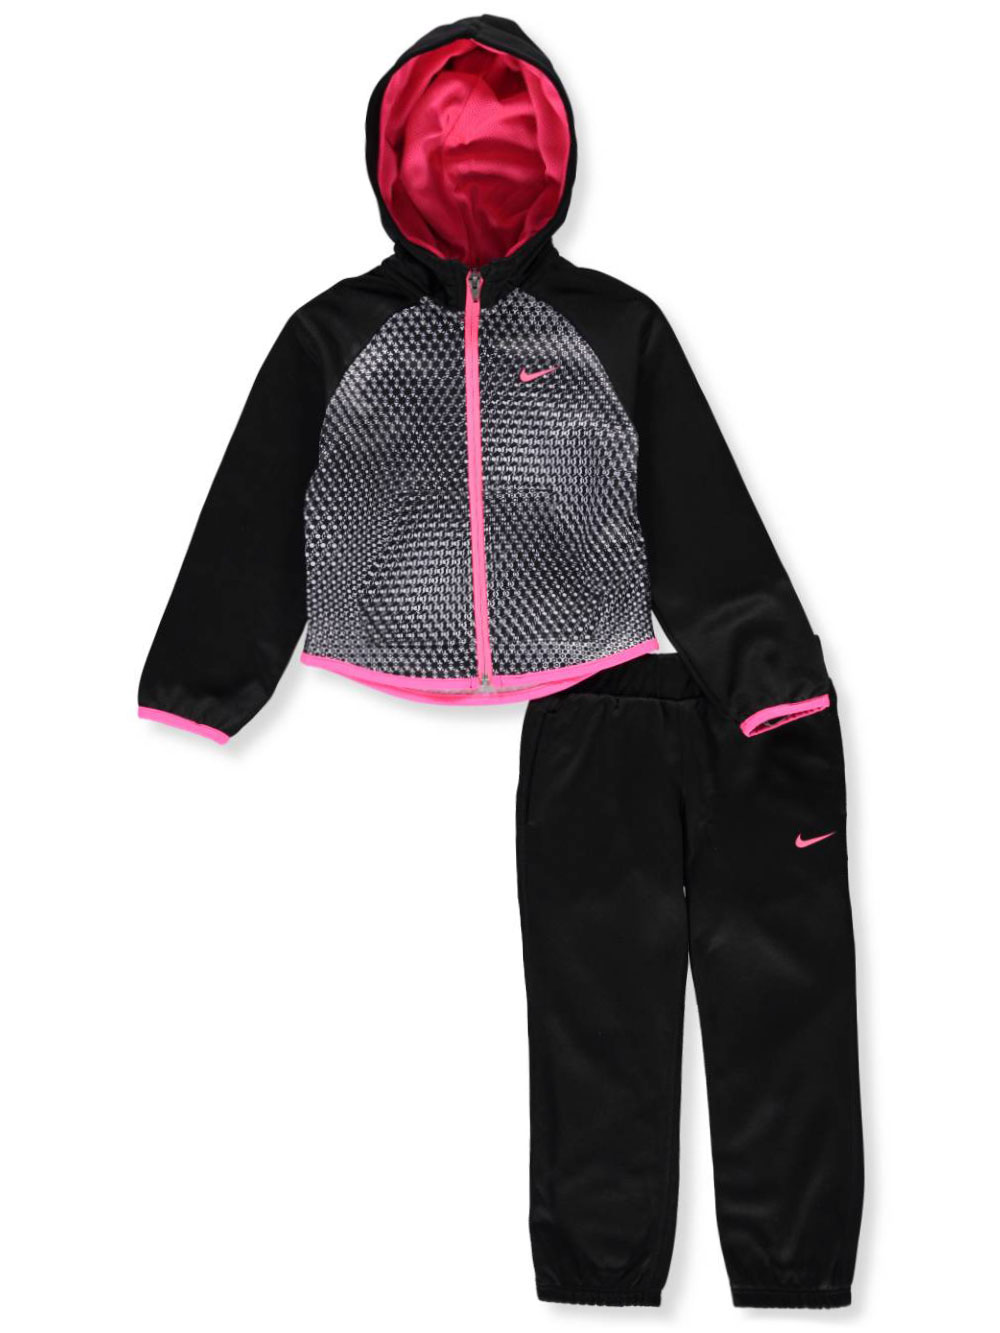 Size 3t Pant Sets for Girls